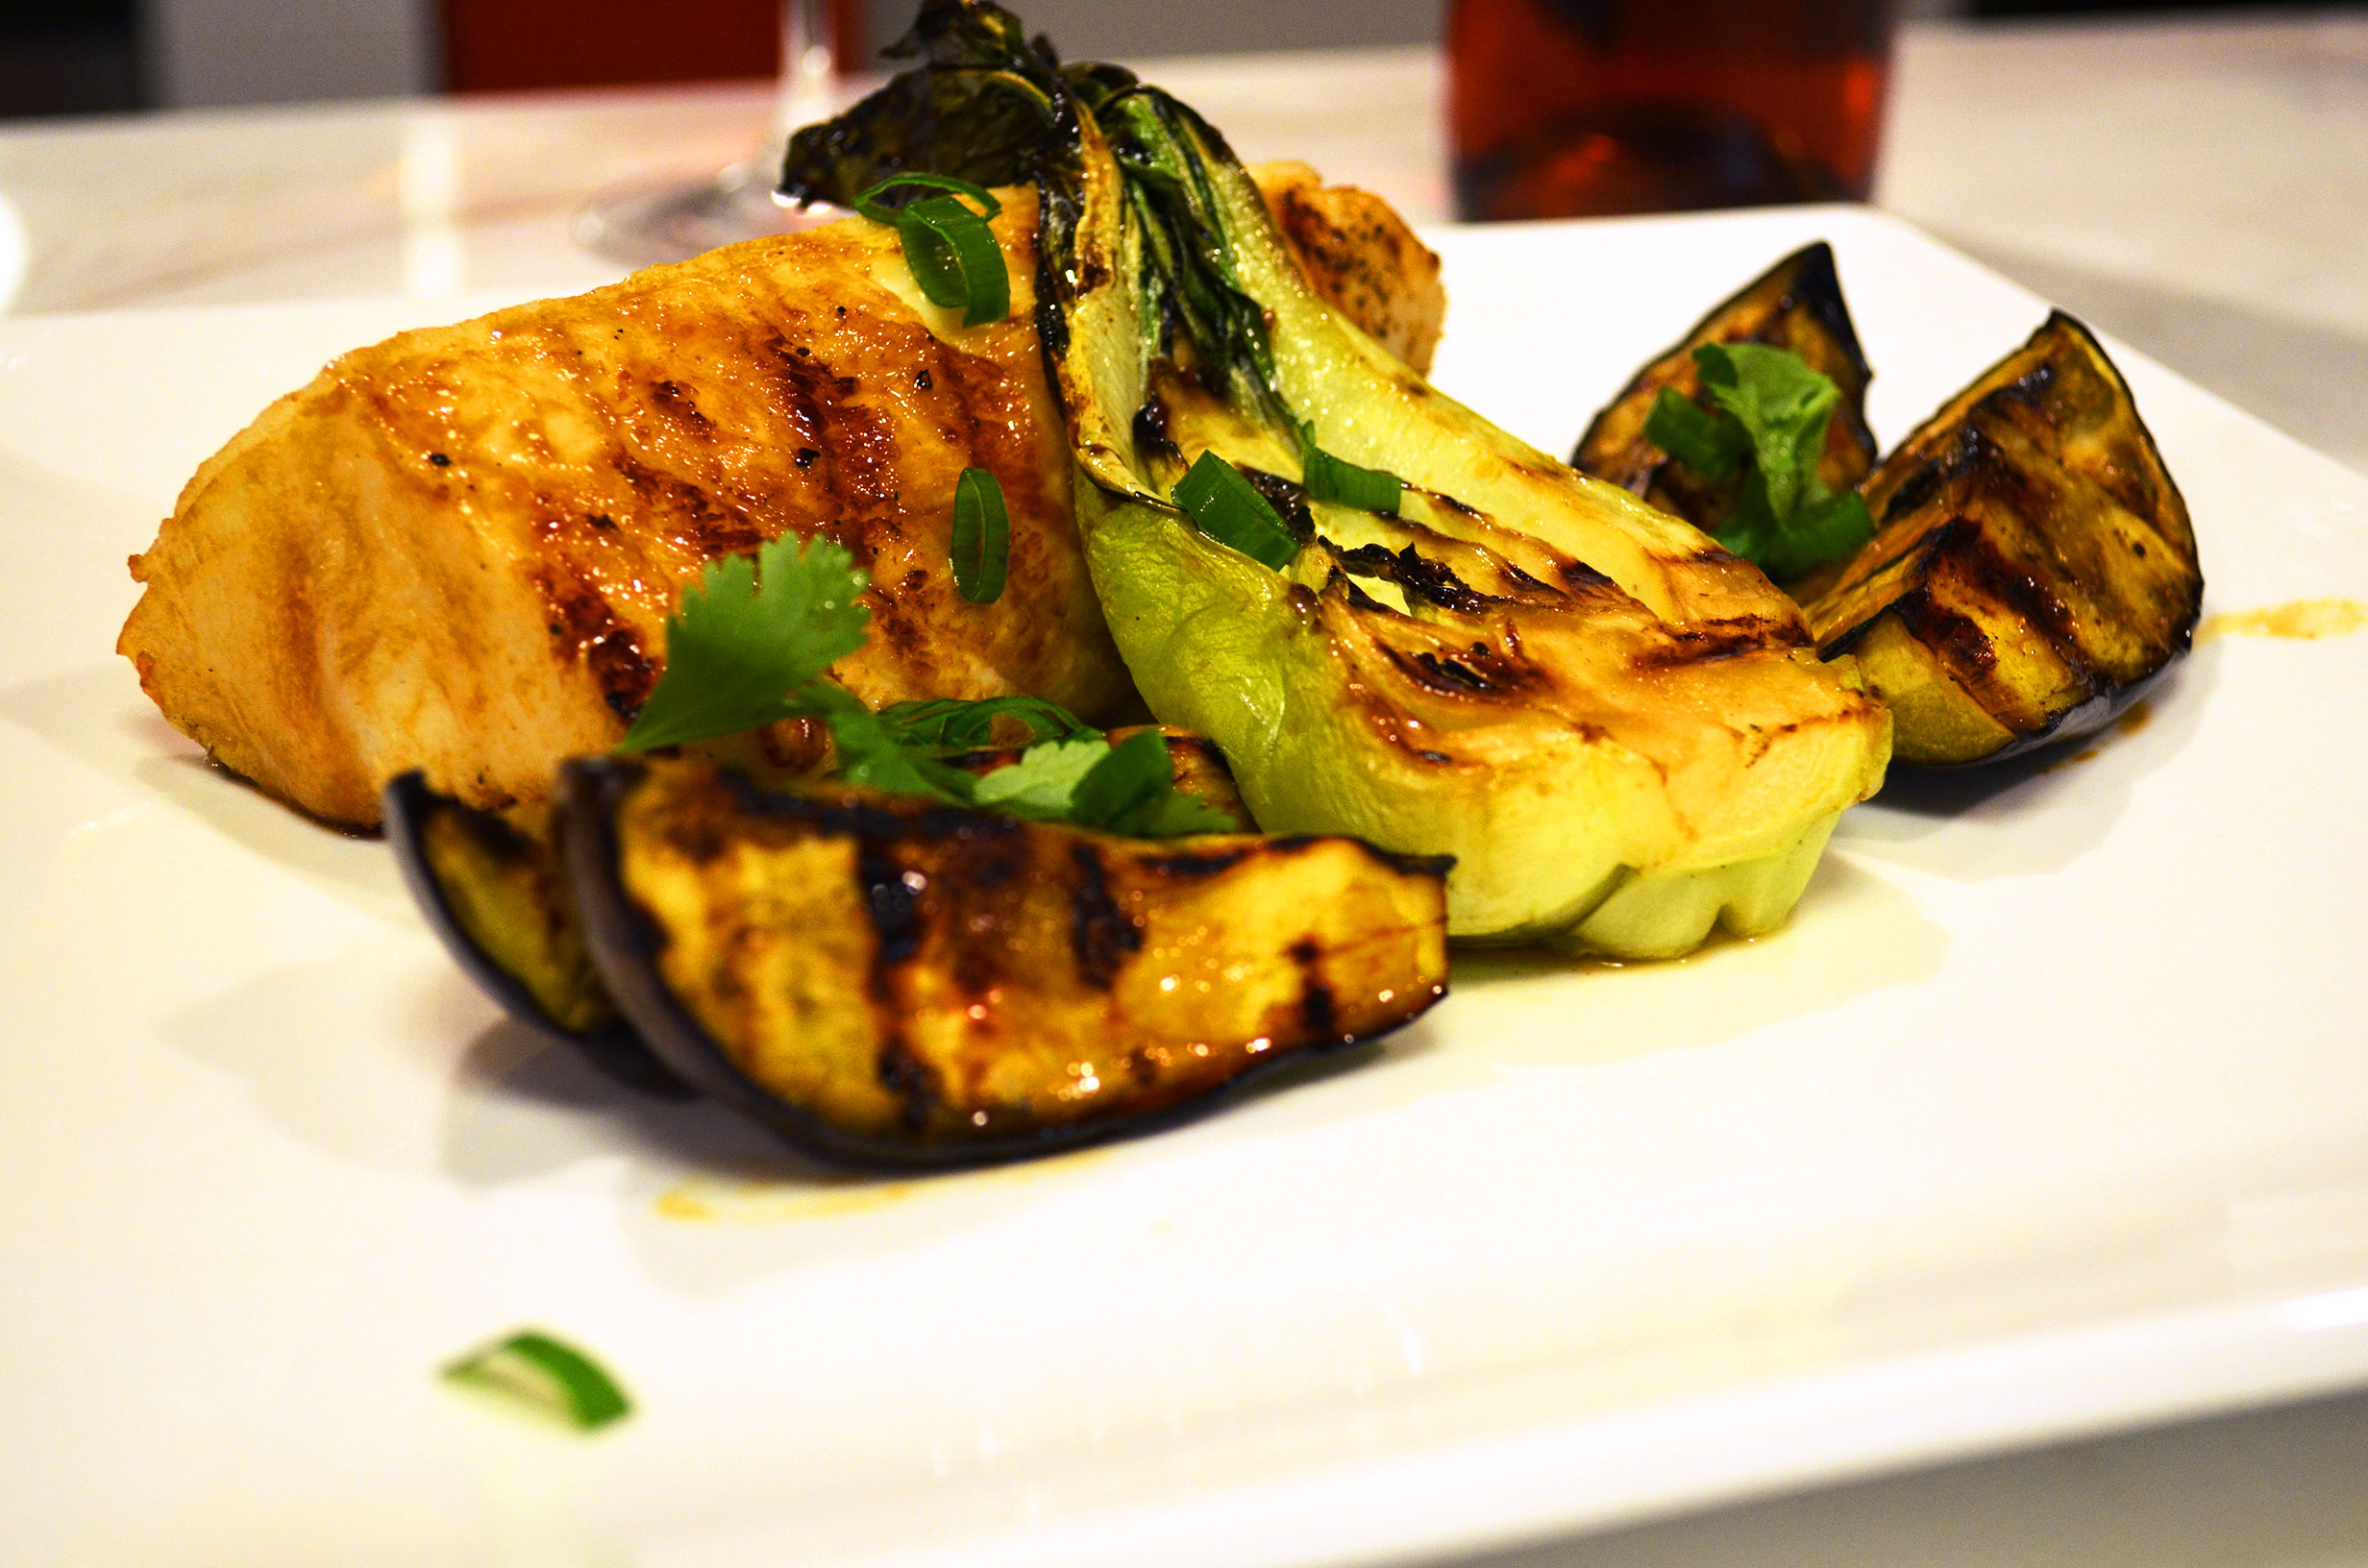 Grilled Halibut, Eggplant, And Baby Bok Choy With Korean Barbecue ...